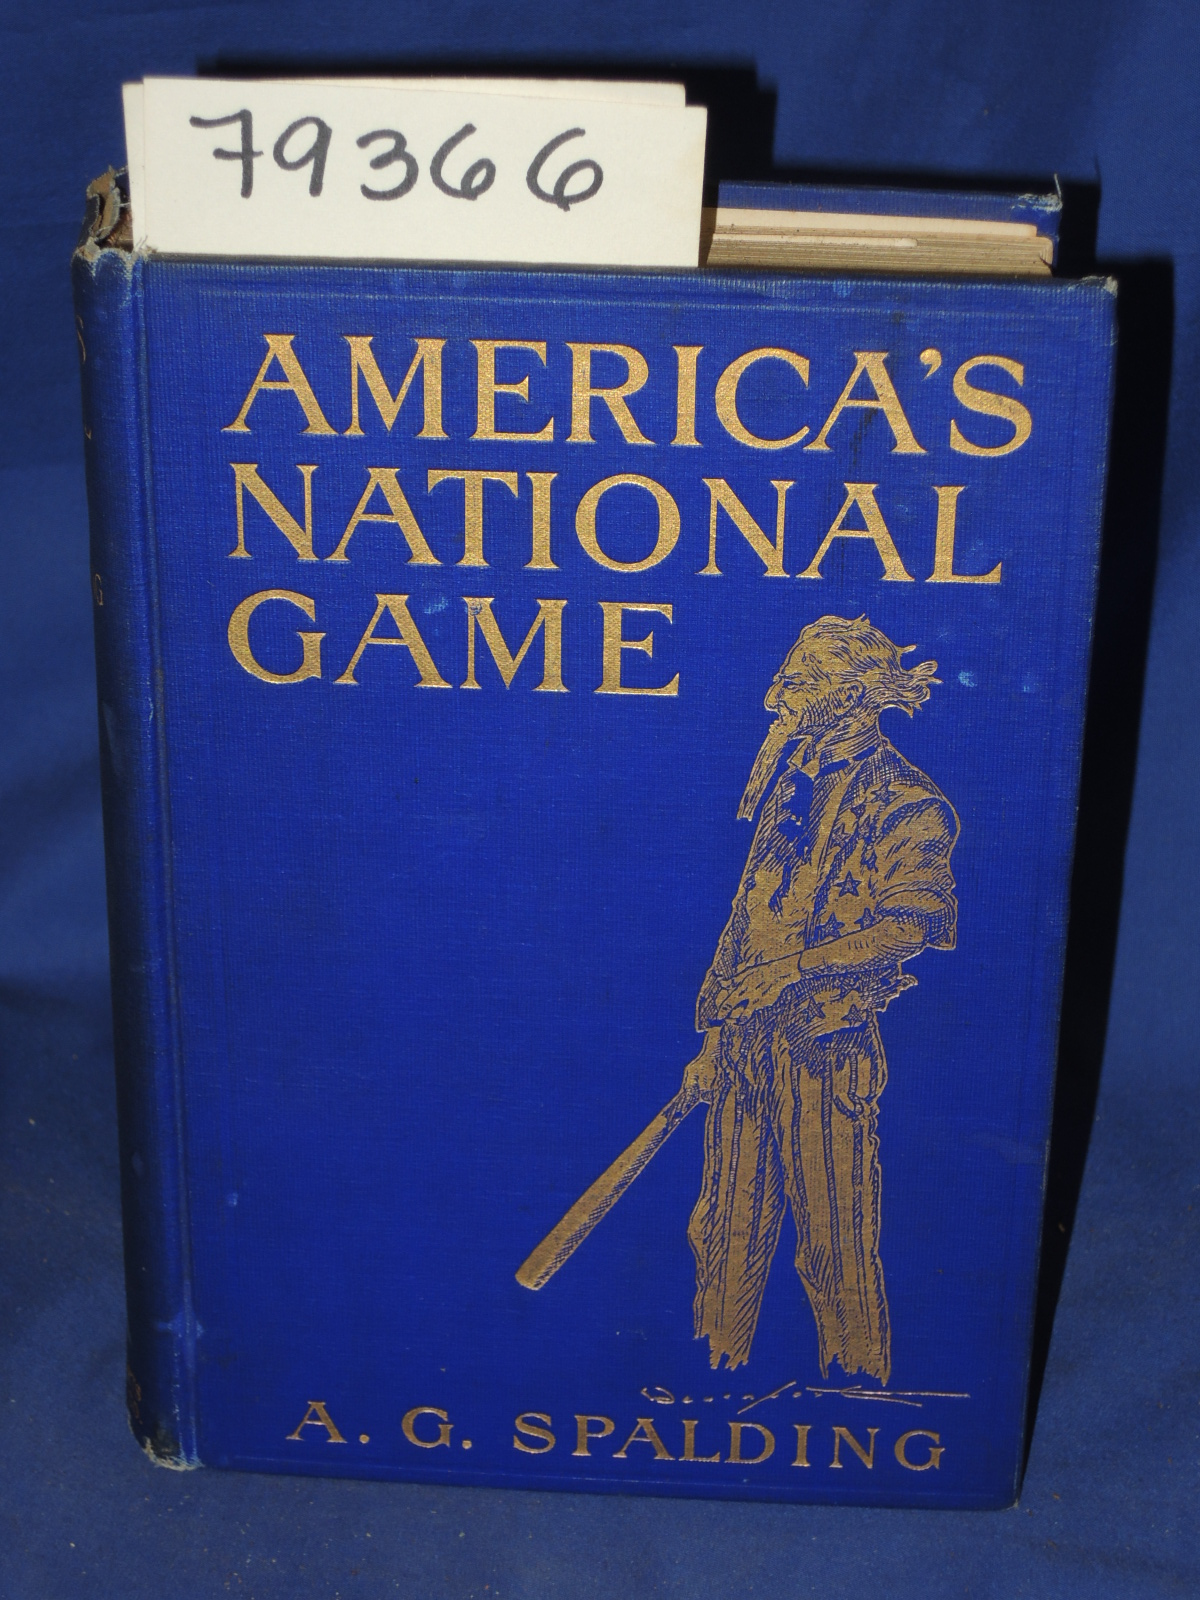 Spalding, A.G.: AMERICA'S NATIONAL GAME